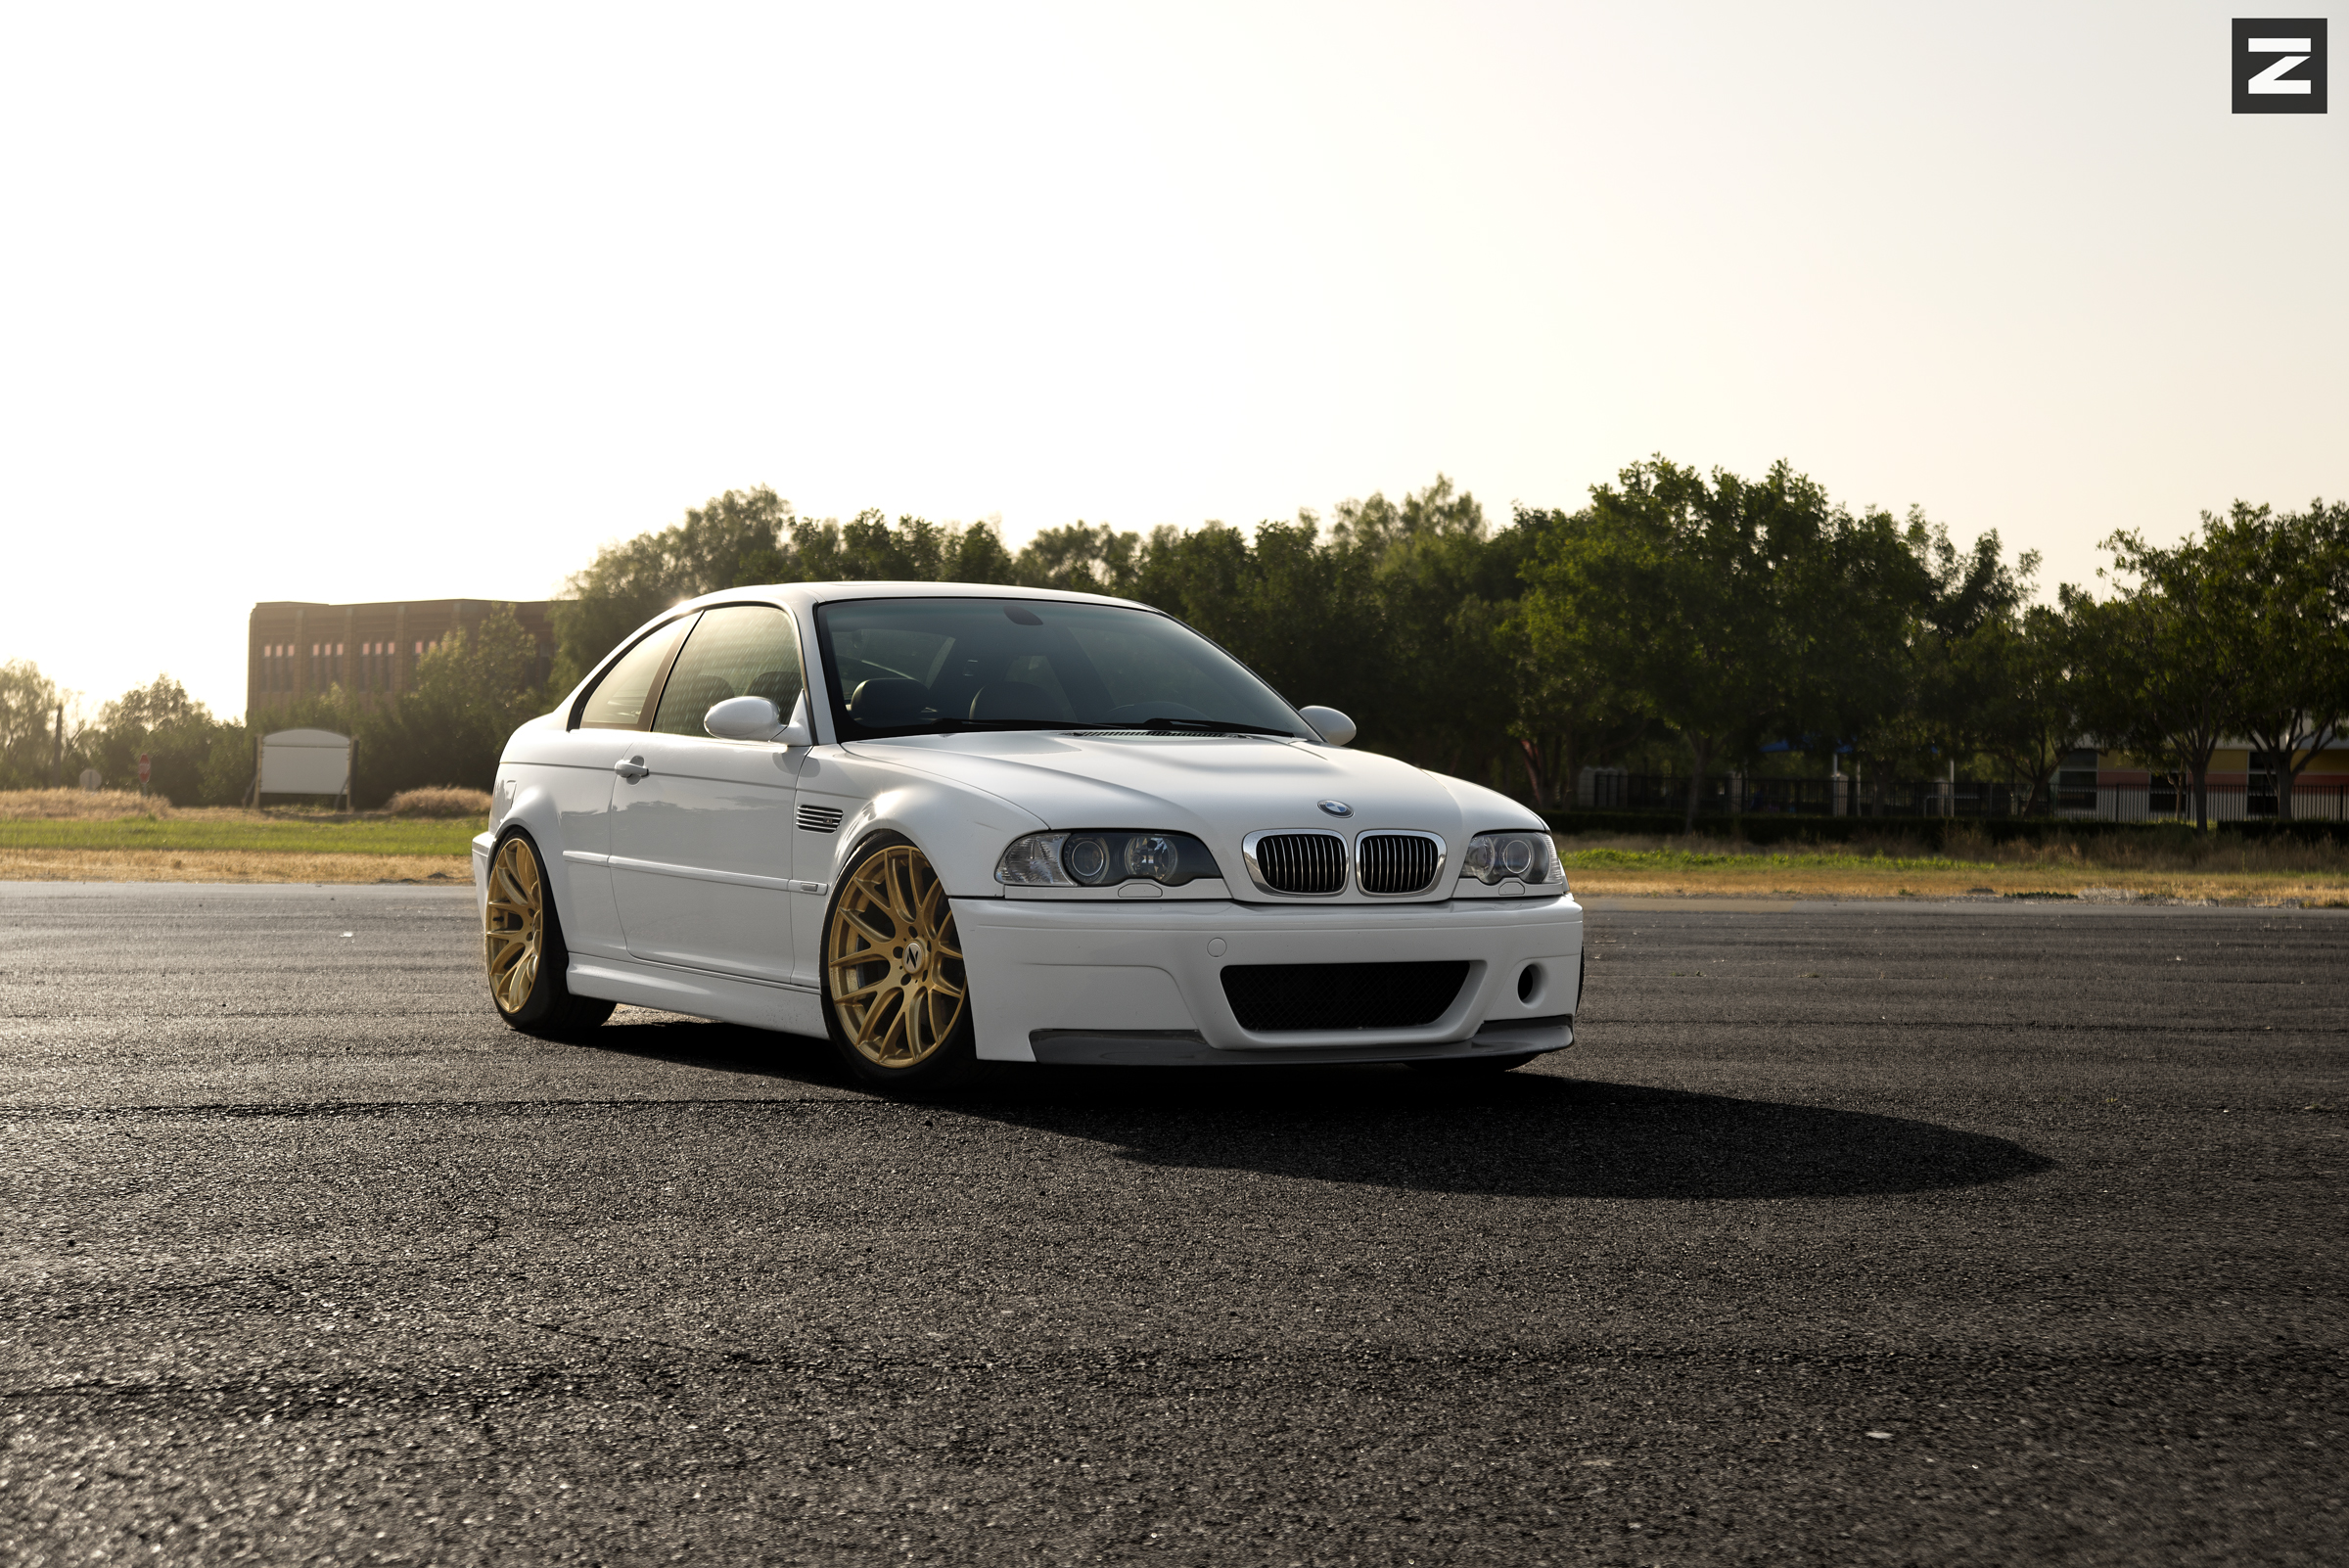 BMW E46 M3 White Gold ZS01